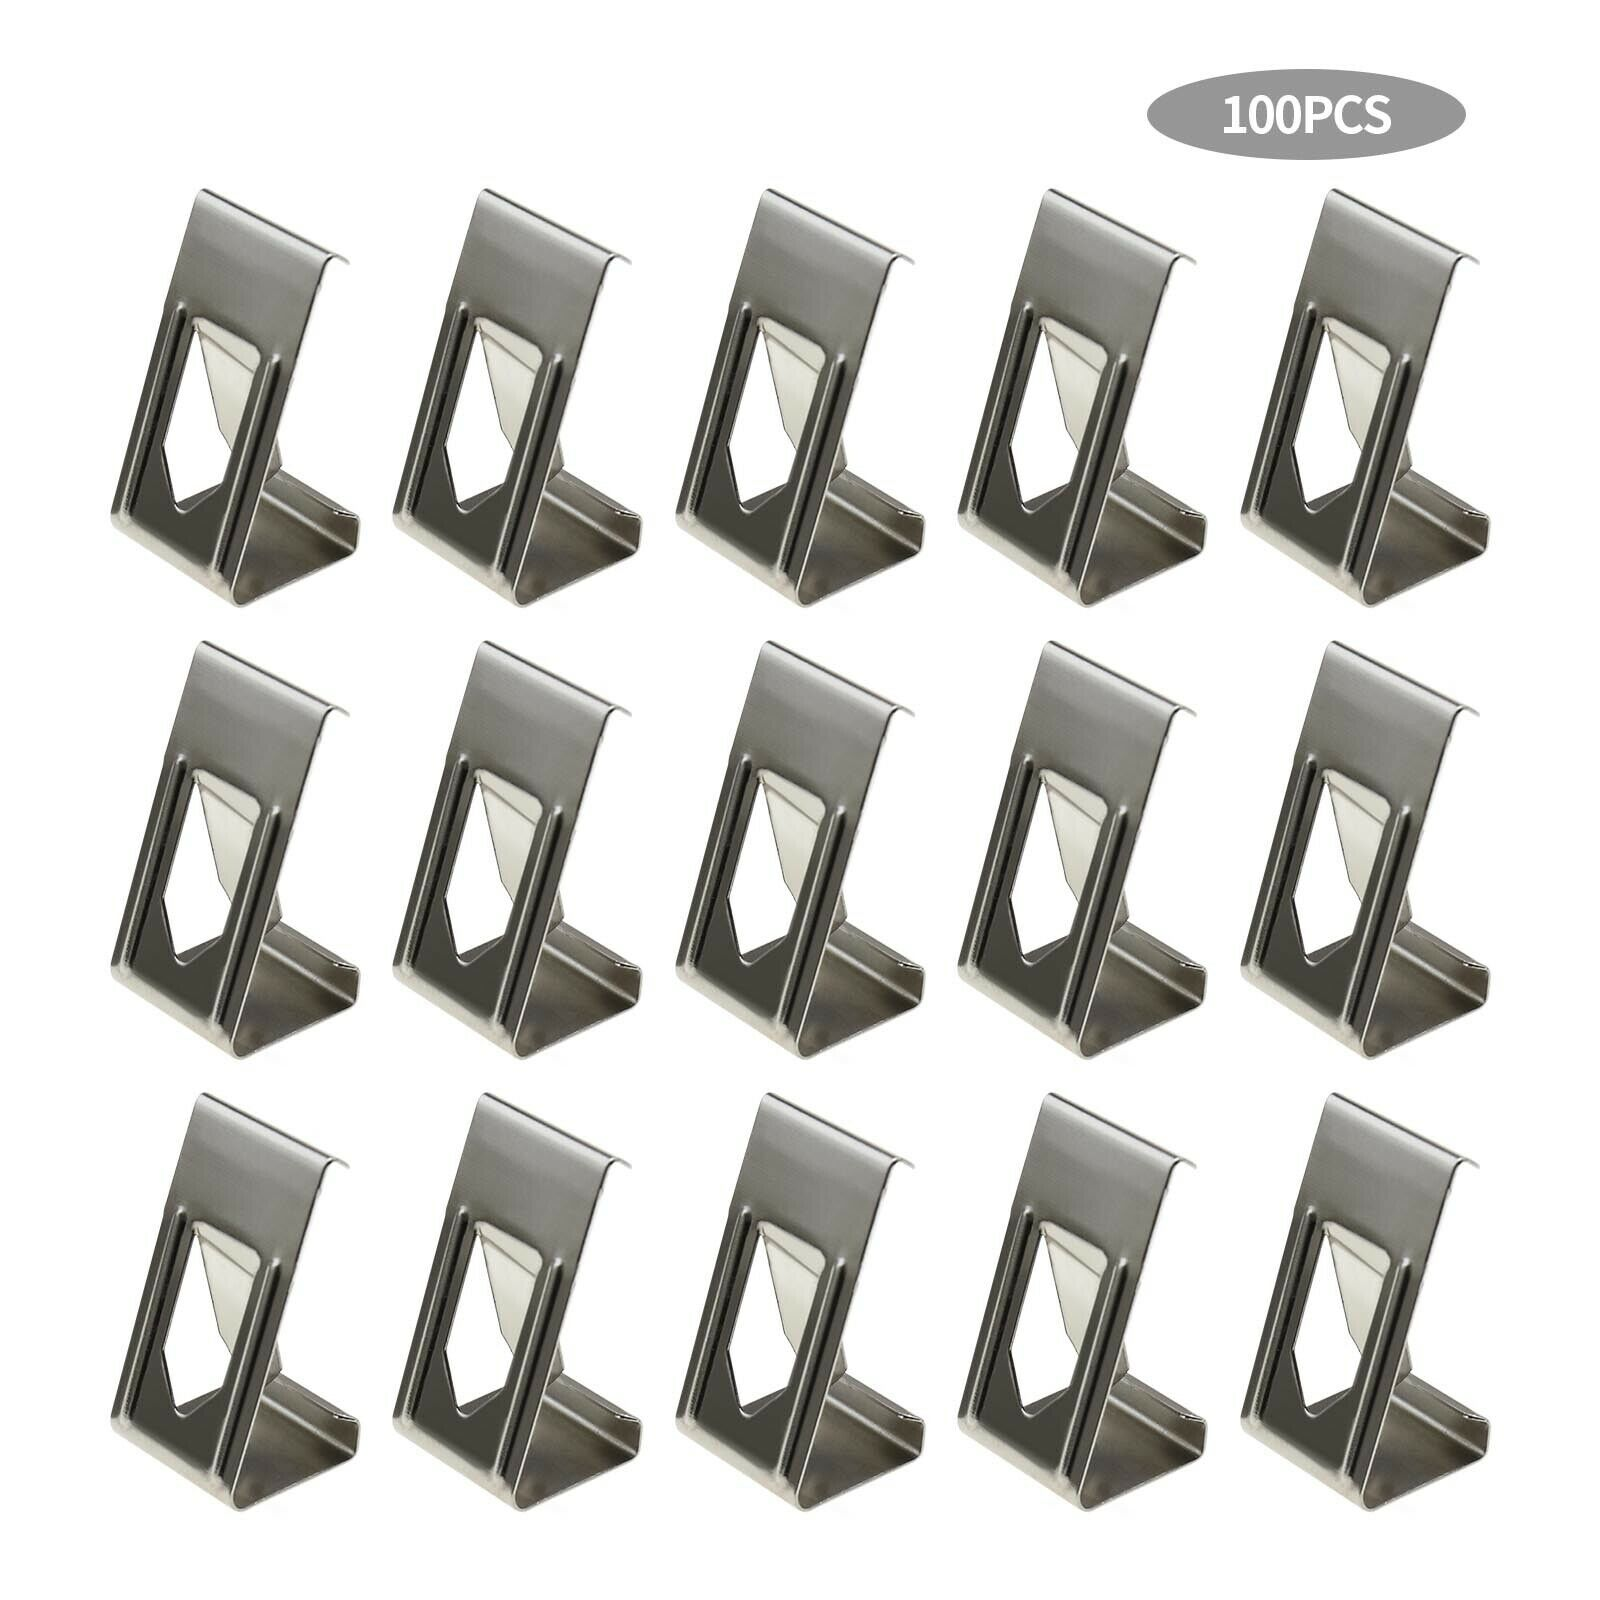 100Pcs 3D Printer Heated Bed Securing Clips Holder Metal Spring Turn Clamps